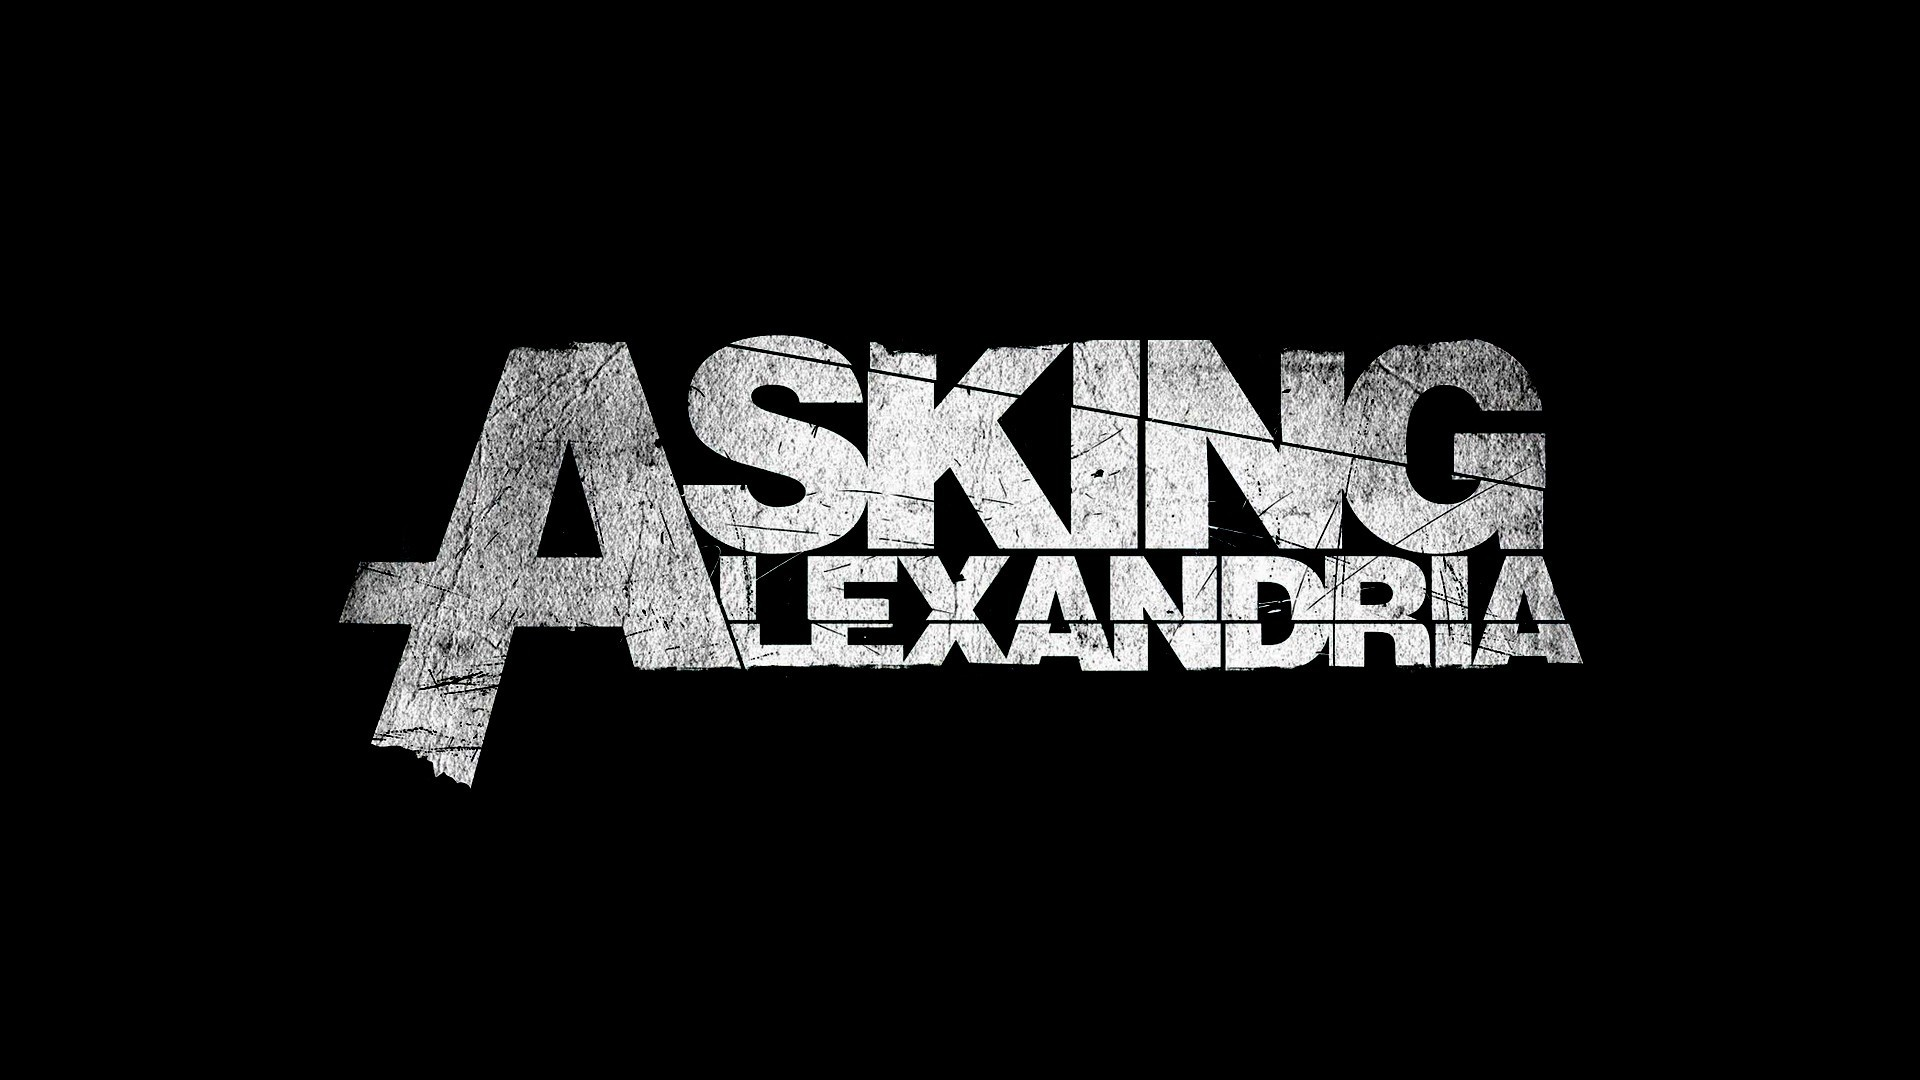 1920x1080 Download Free Asking Alexandria Background.